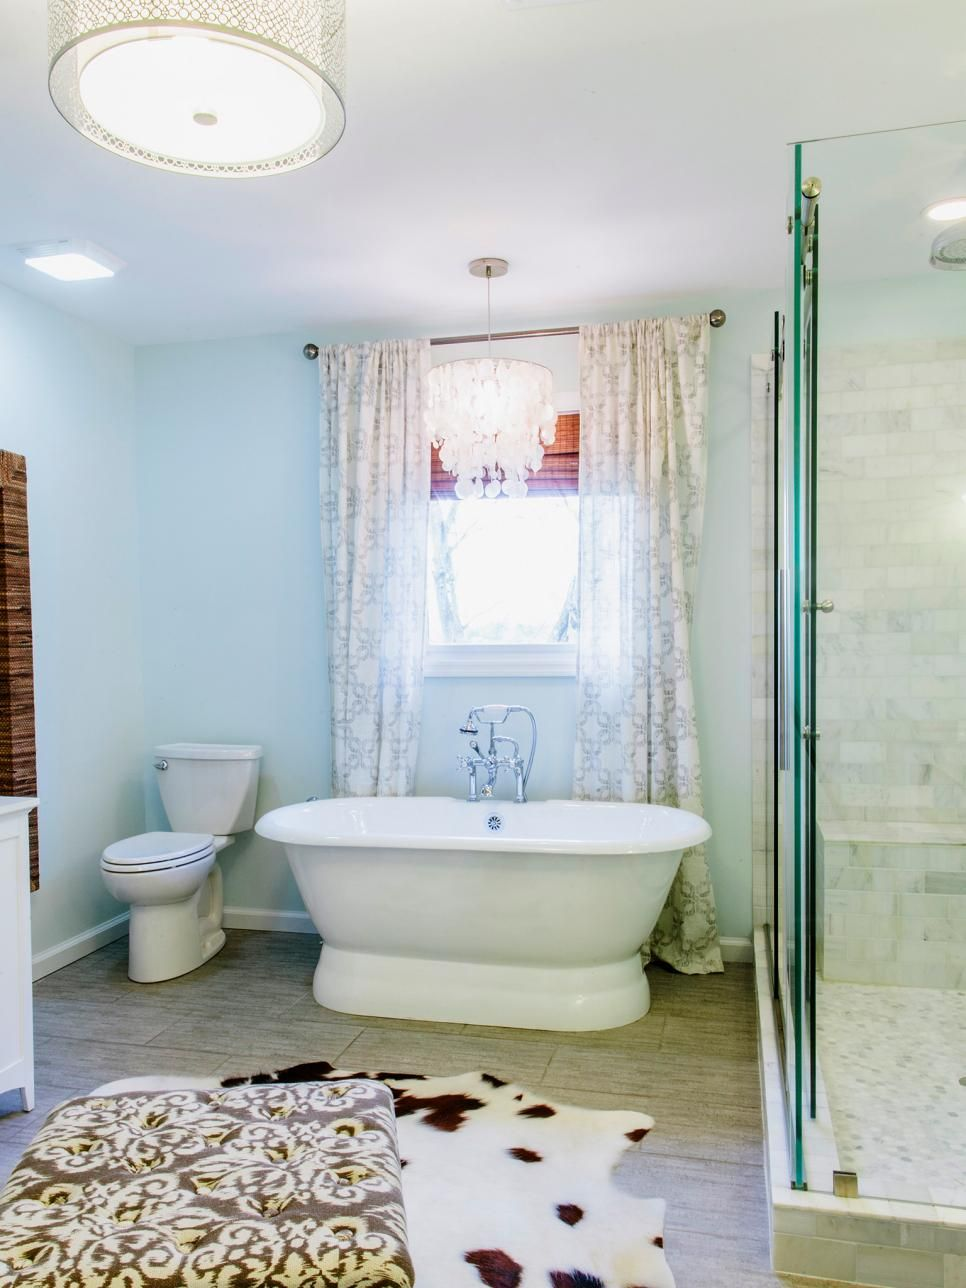 44 Luxurious Bathtubs For Your Ultimate Enjoyment | Bathtubs ...